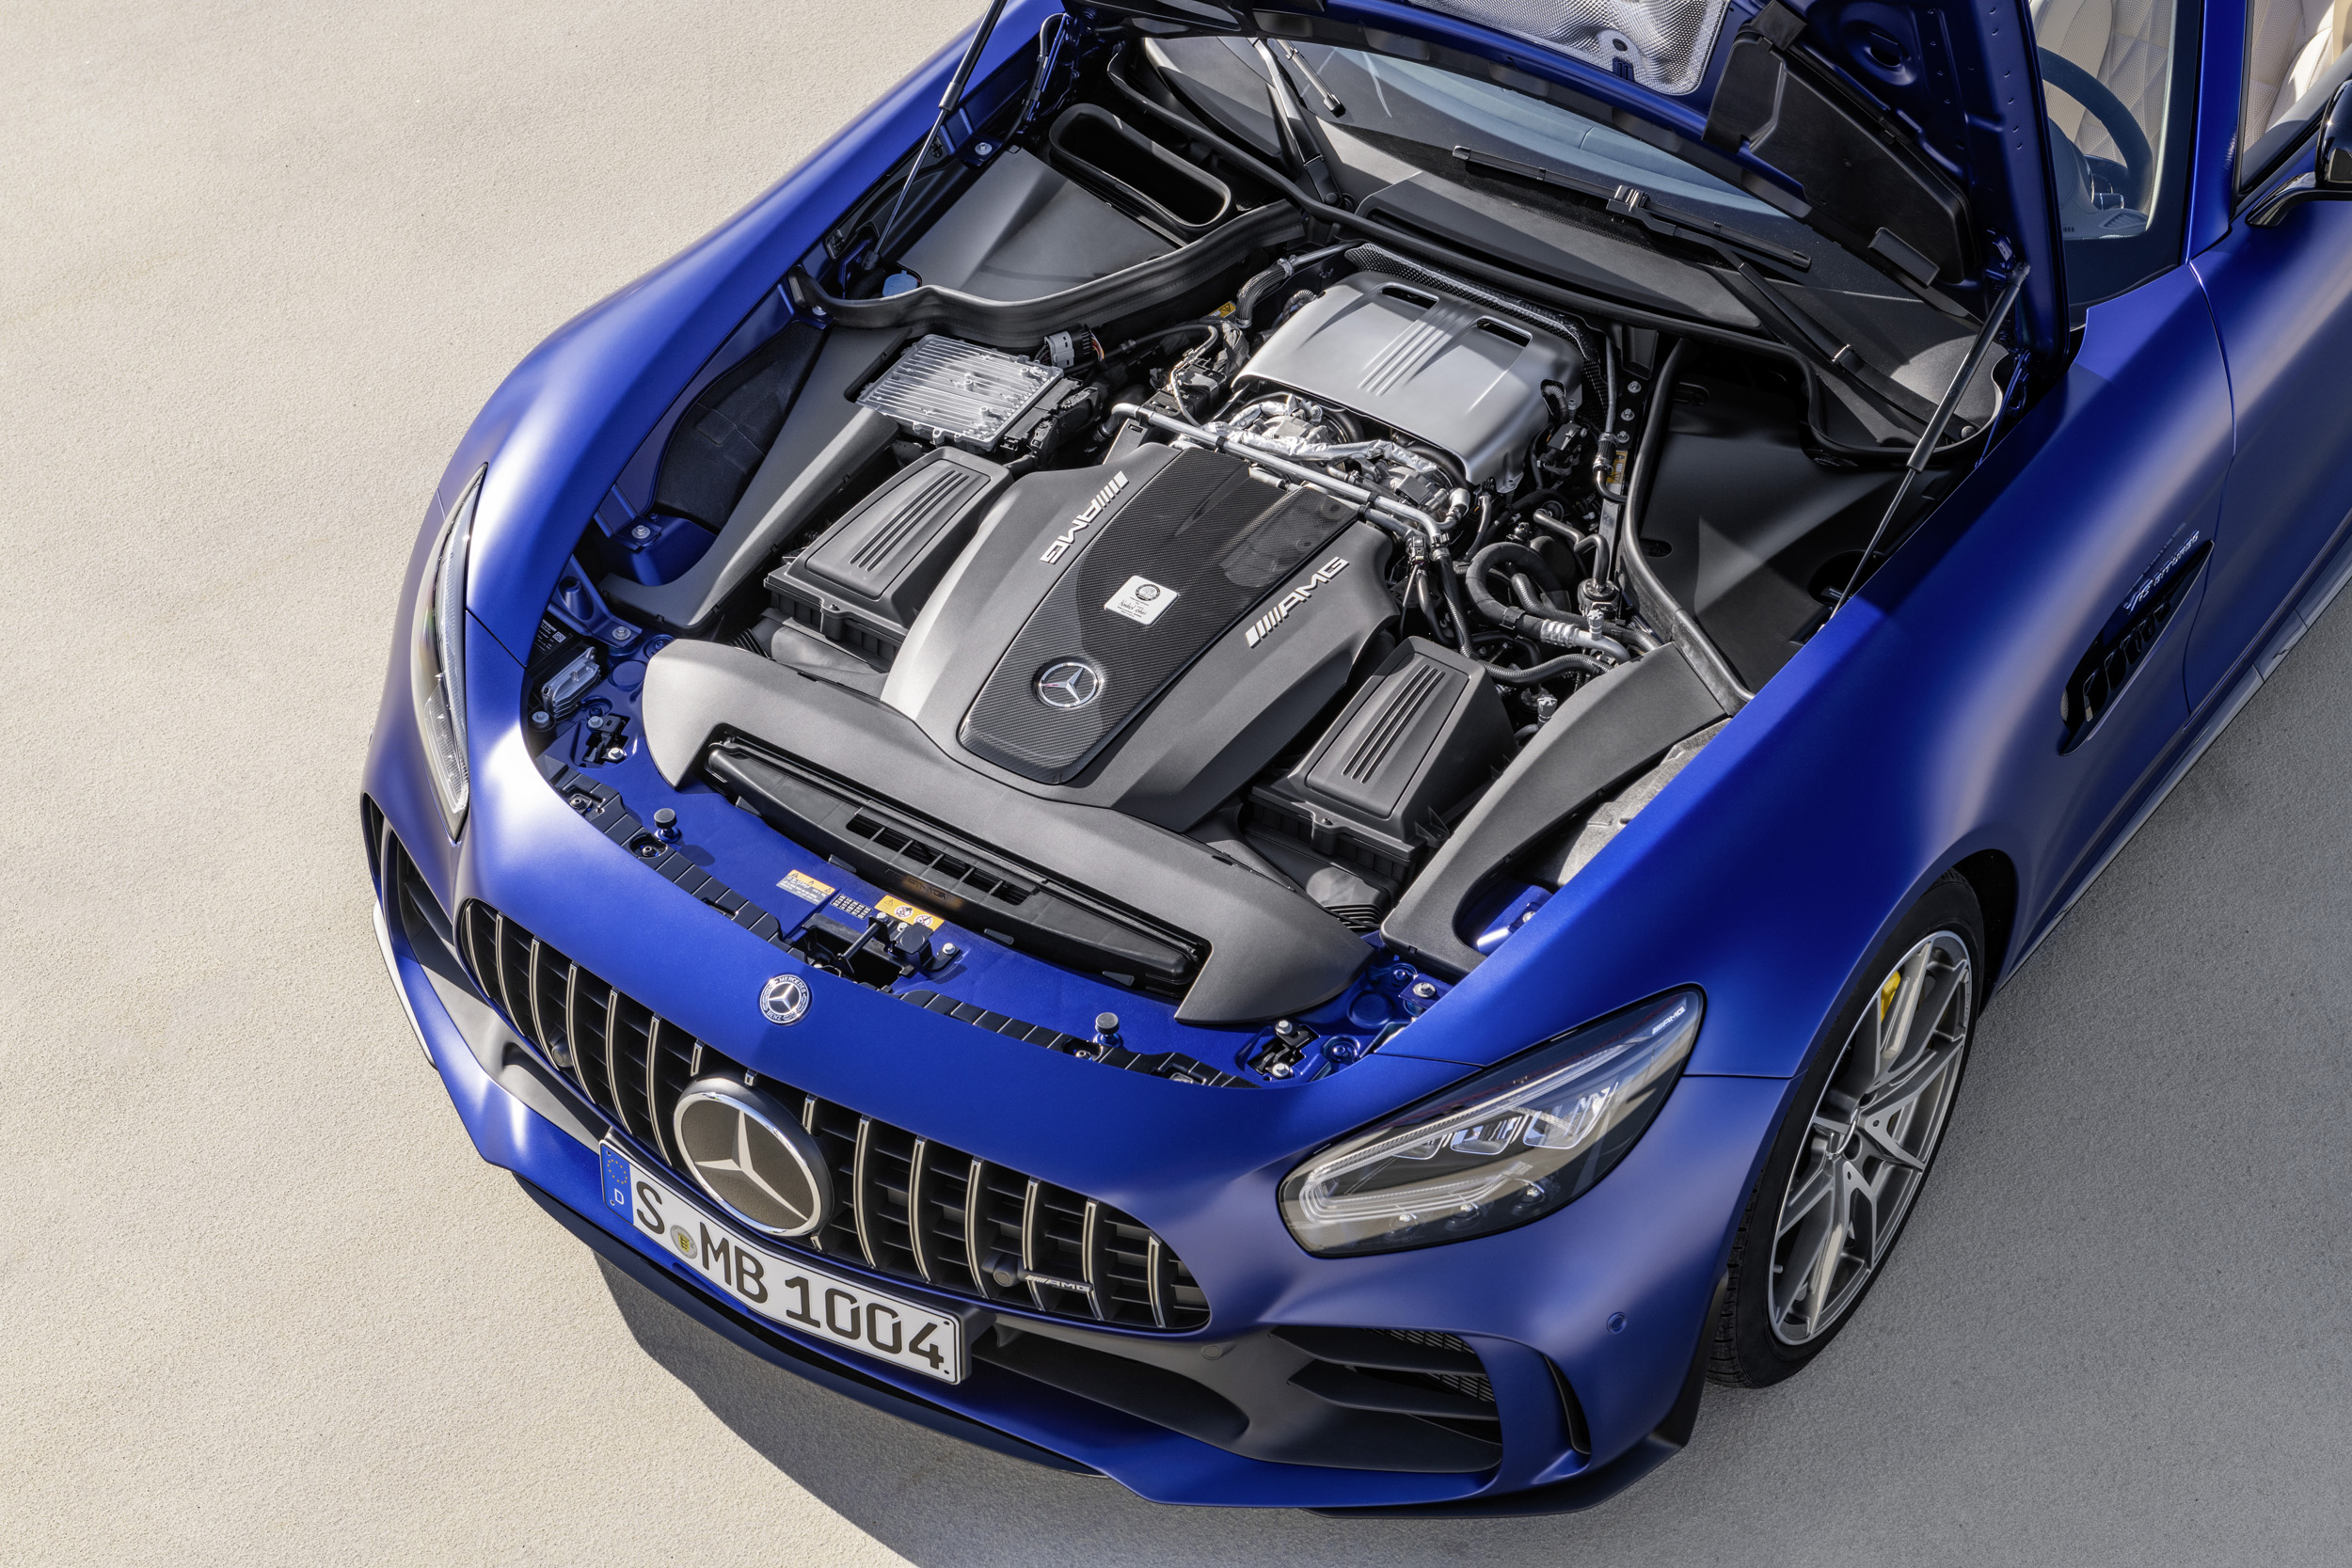 The new Mercedes-AMG GT R Roadster - Motor Sports NewsWire  Way For Diagram Wiring Switch Esp Gtr on